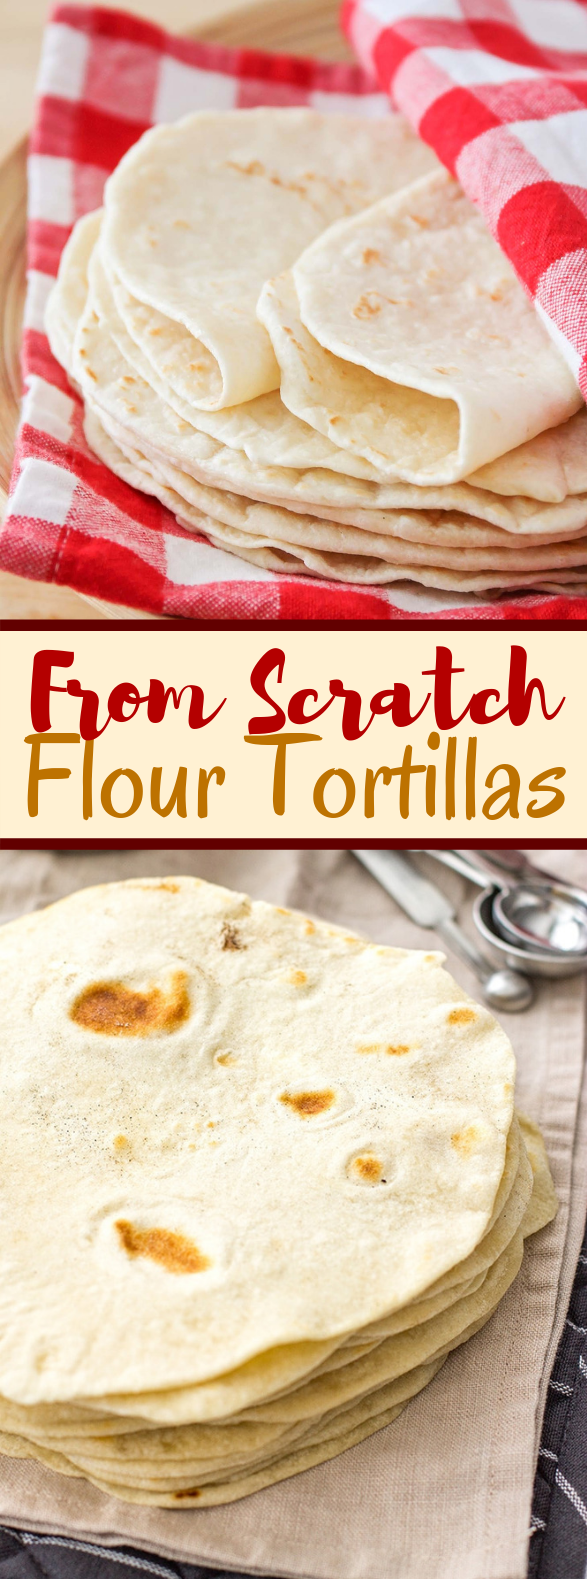 Easy Flour Tortillas From Scratch #dinner #vegan